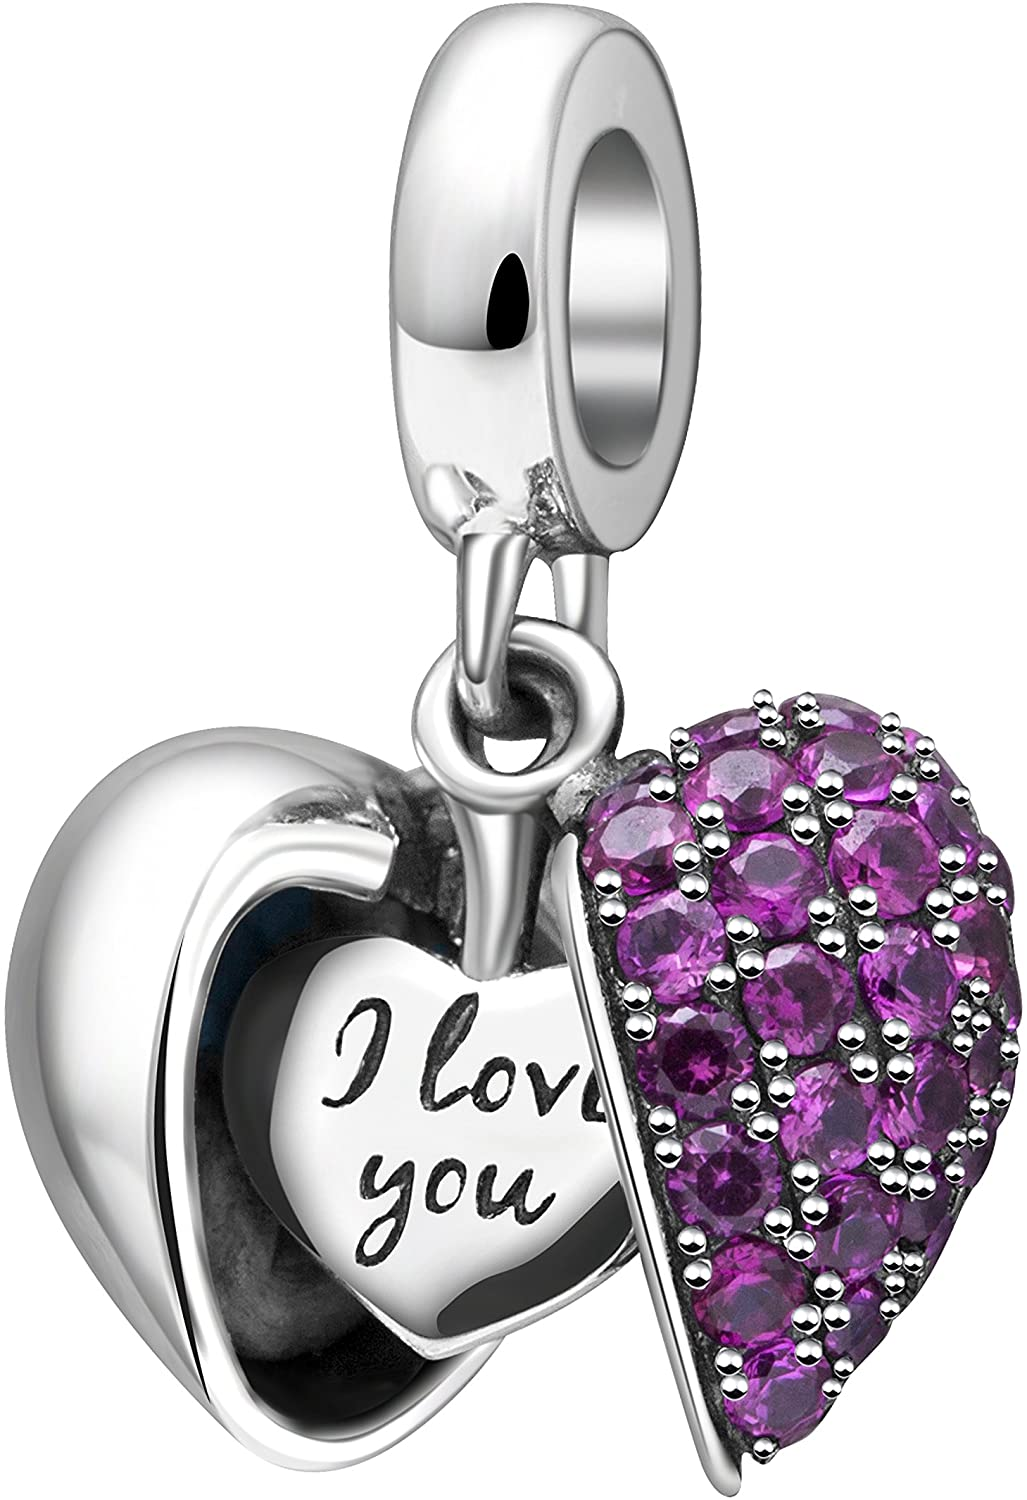 I Love You Charm 925 Sterling Silver Love Heart Dangle Bead Charms for Pandora Charms Bracelet Necklace (Heart)